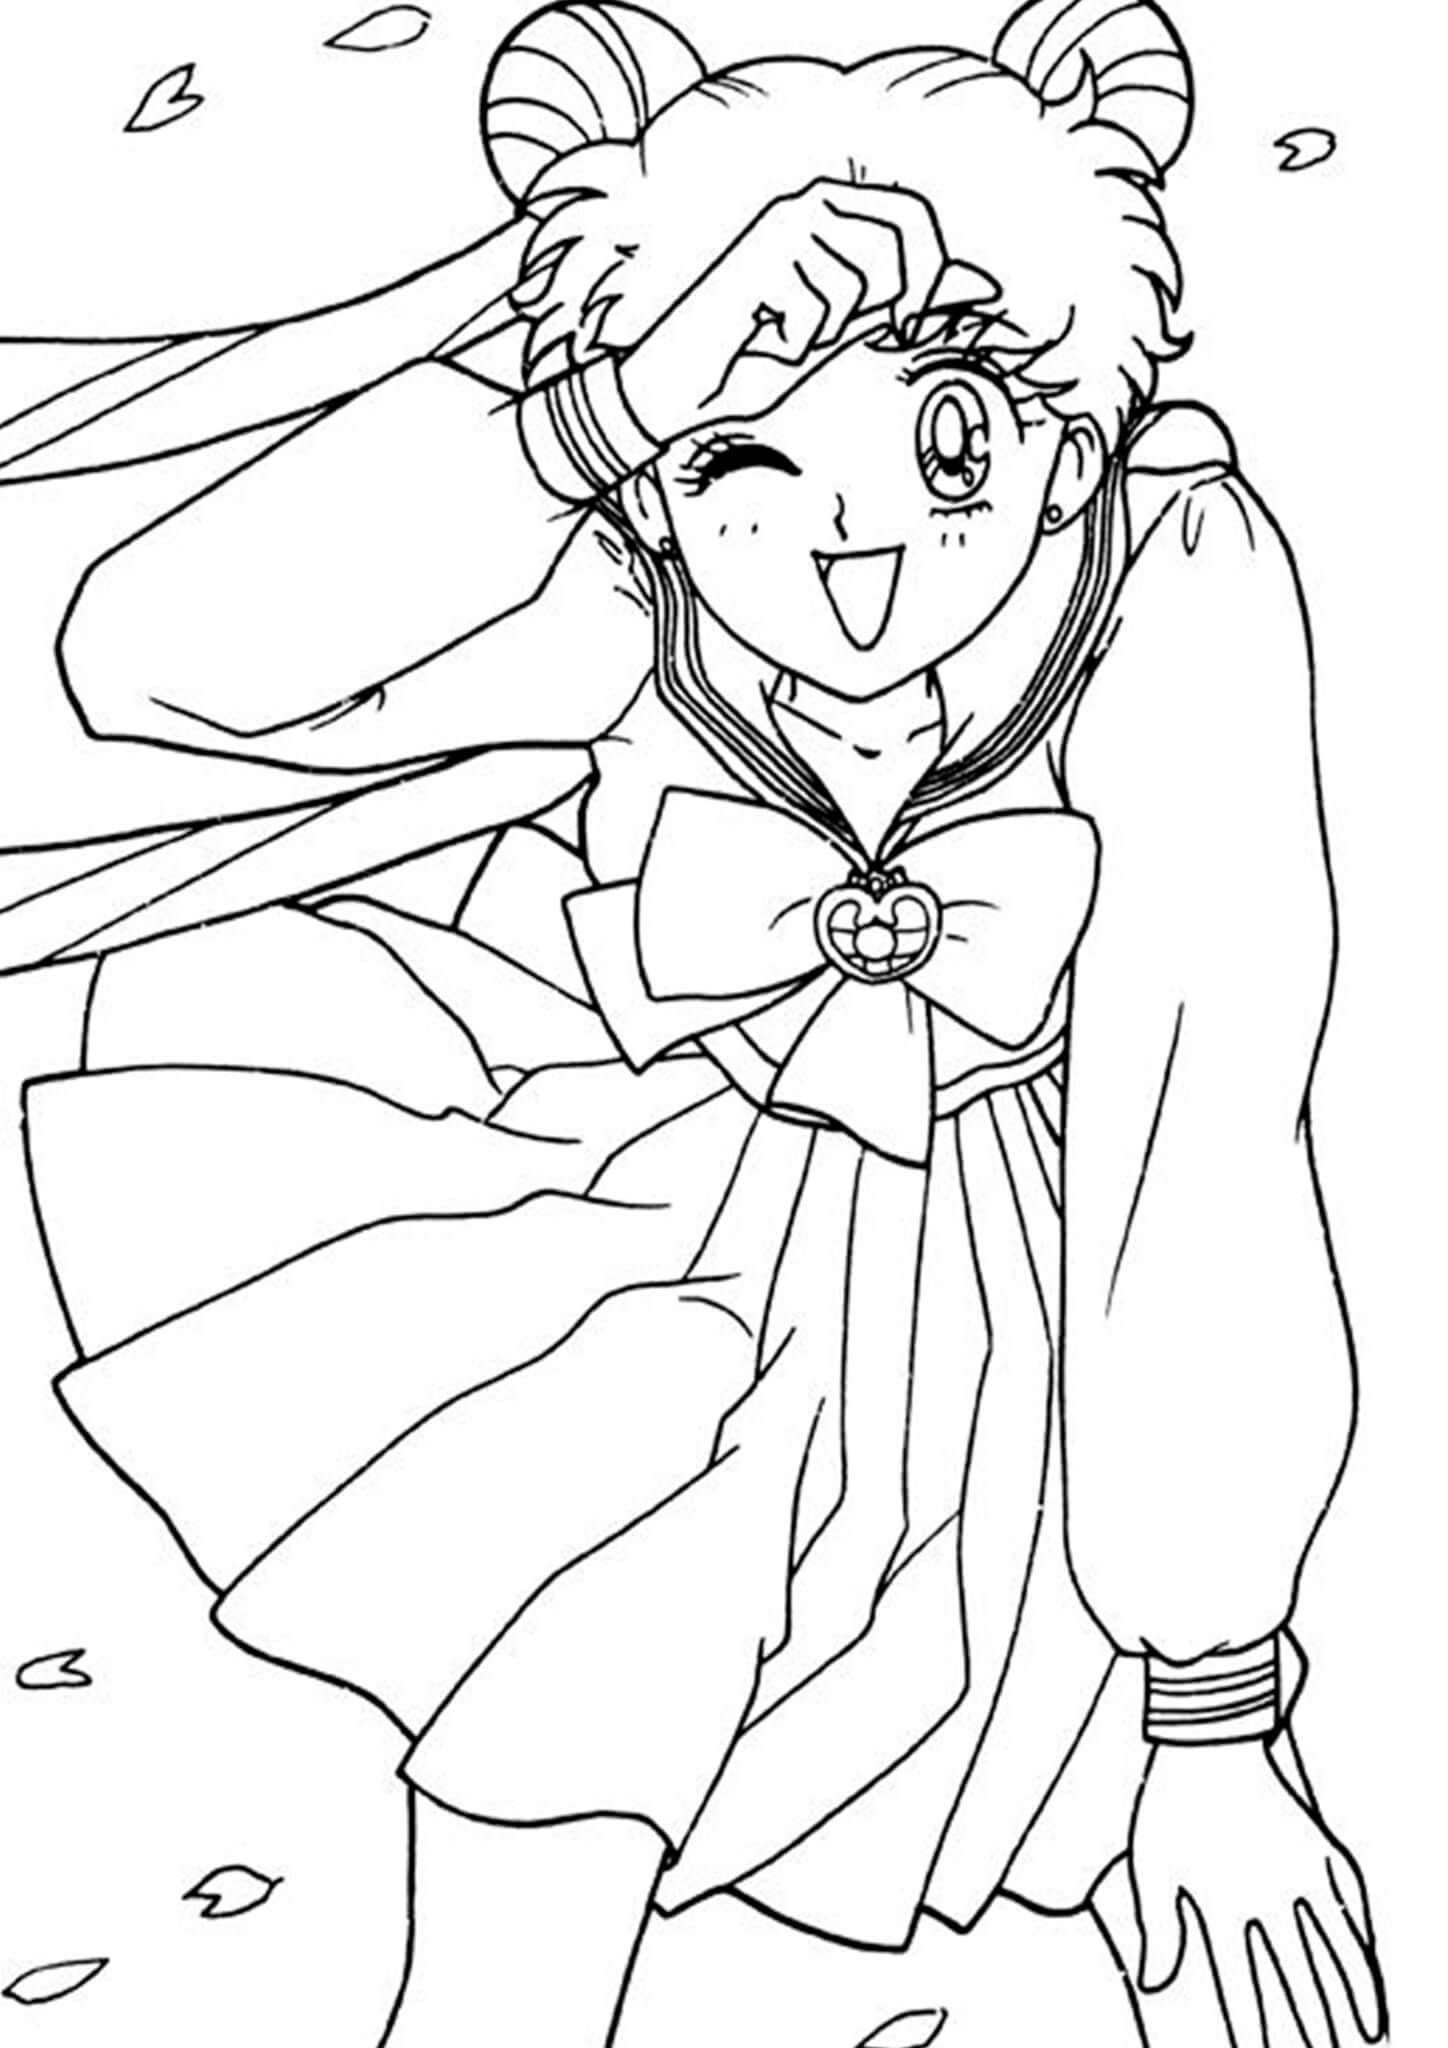 Free Easy To Print Sailor Moon Coloring Pages Sailor Moon Coloring Pages Moon Coloring Pages Sailor Moon [ 2048 x 1448 Pixel ]